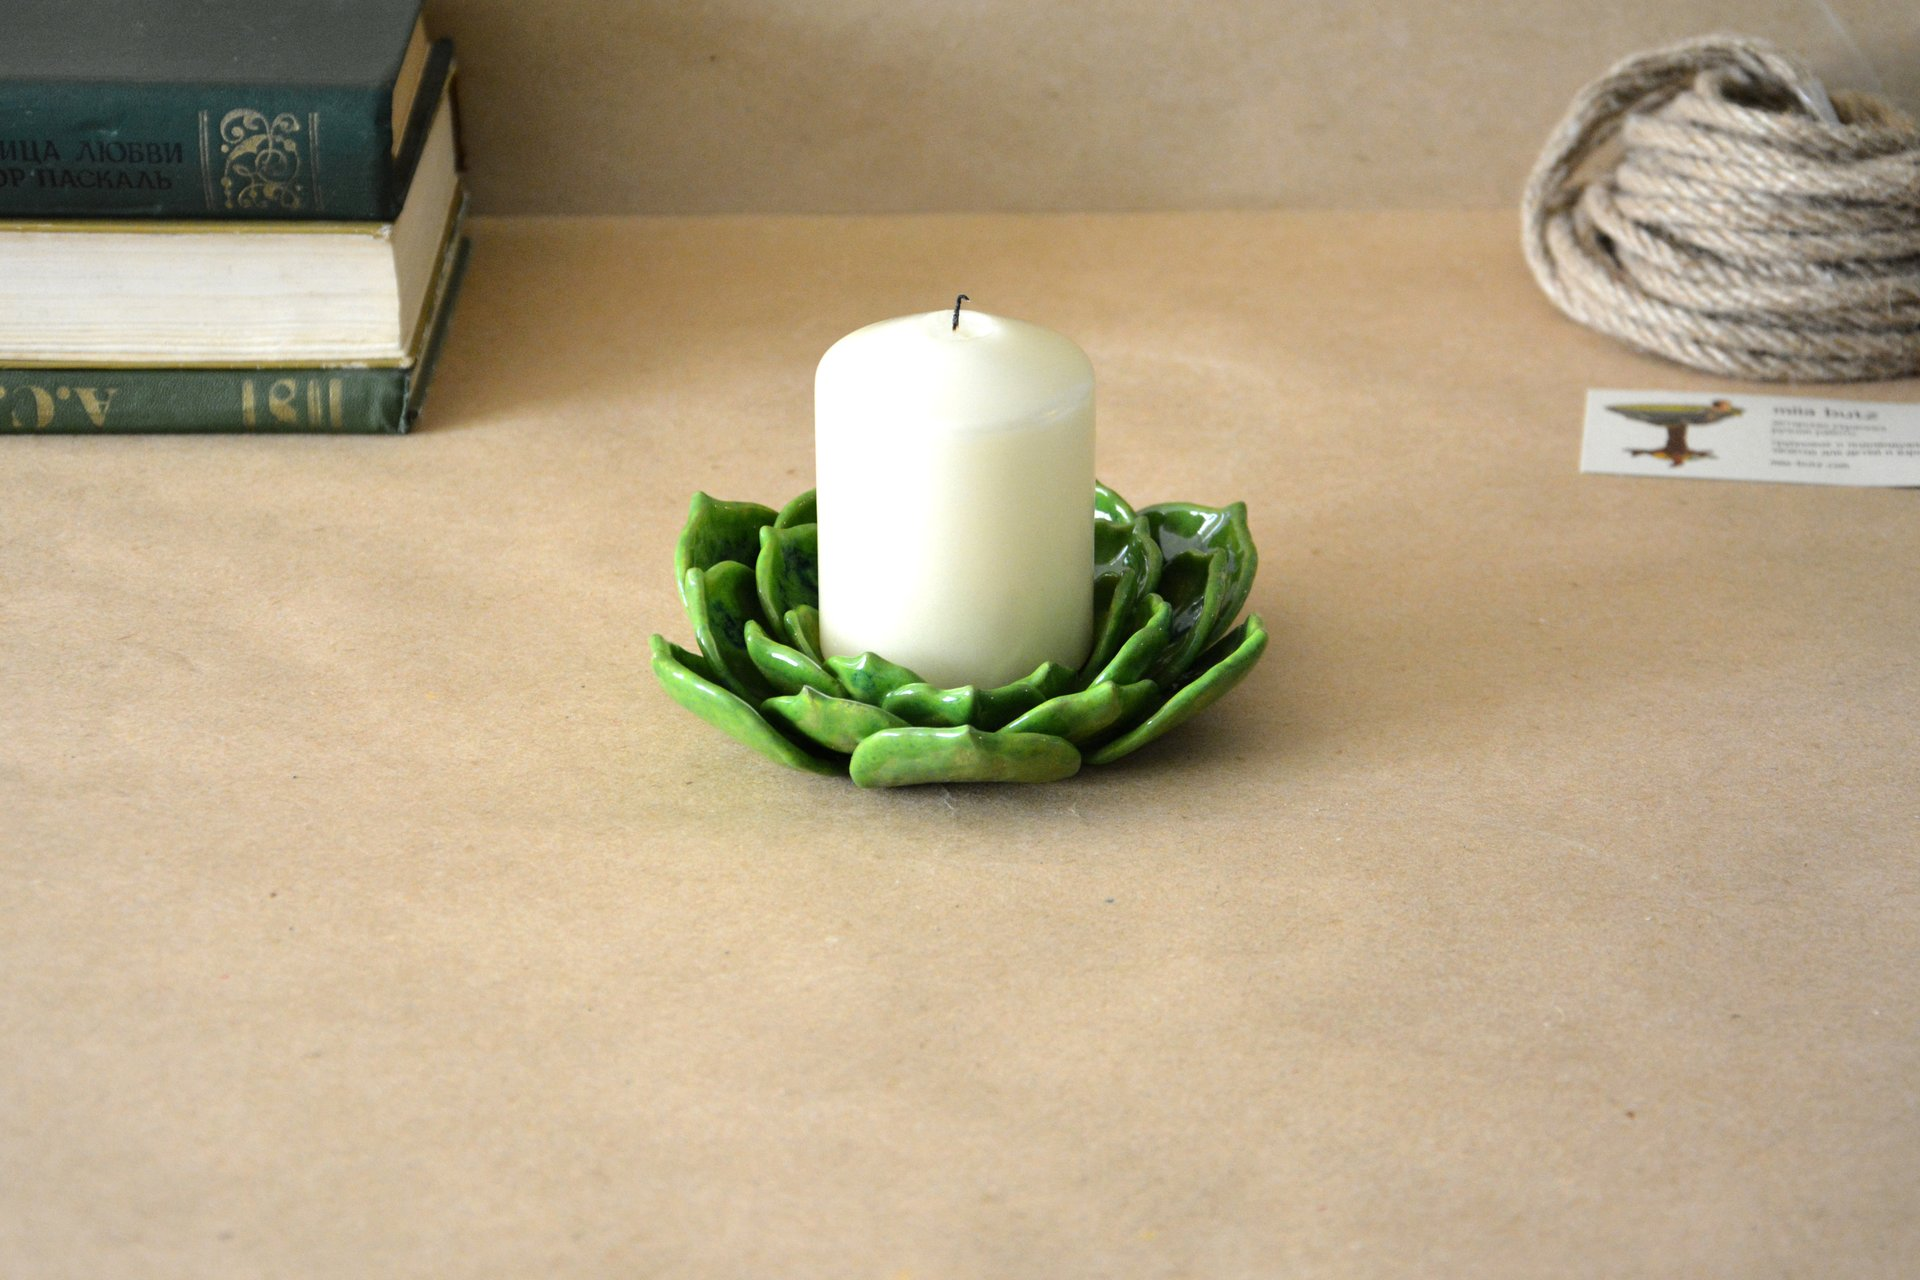 Light green candle holder a Succulent - Ceramic Candl-holders, diameter - 14 cm, photo 4 of 4.